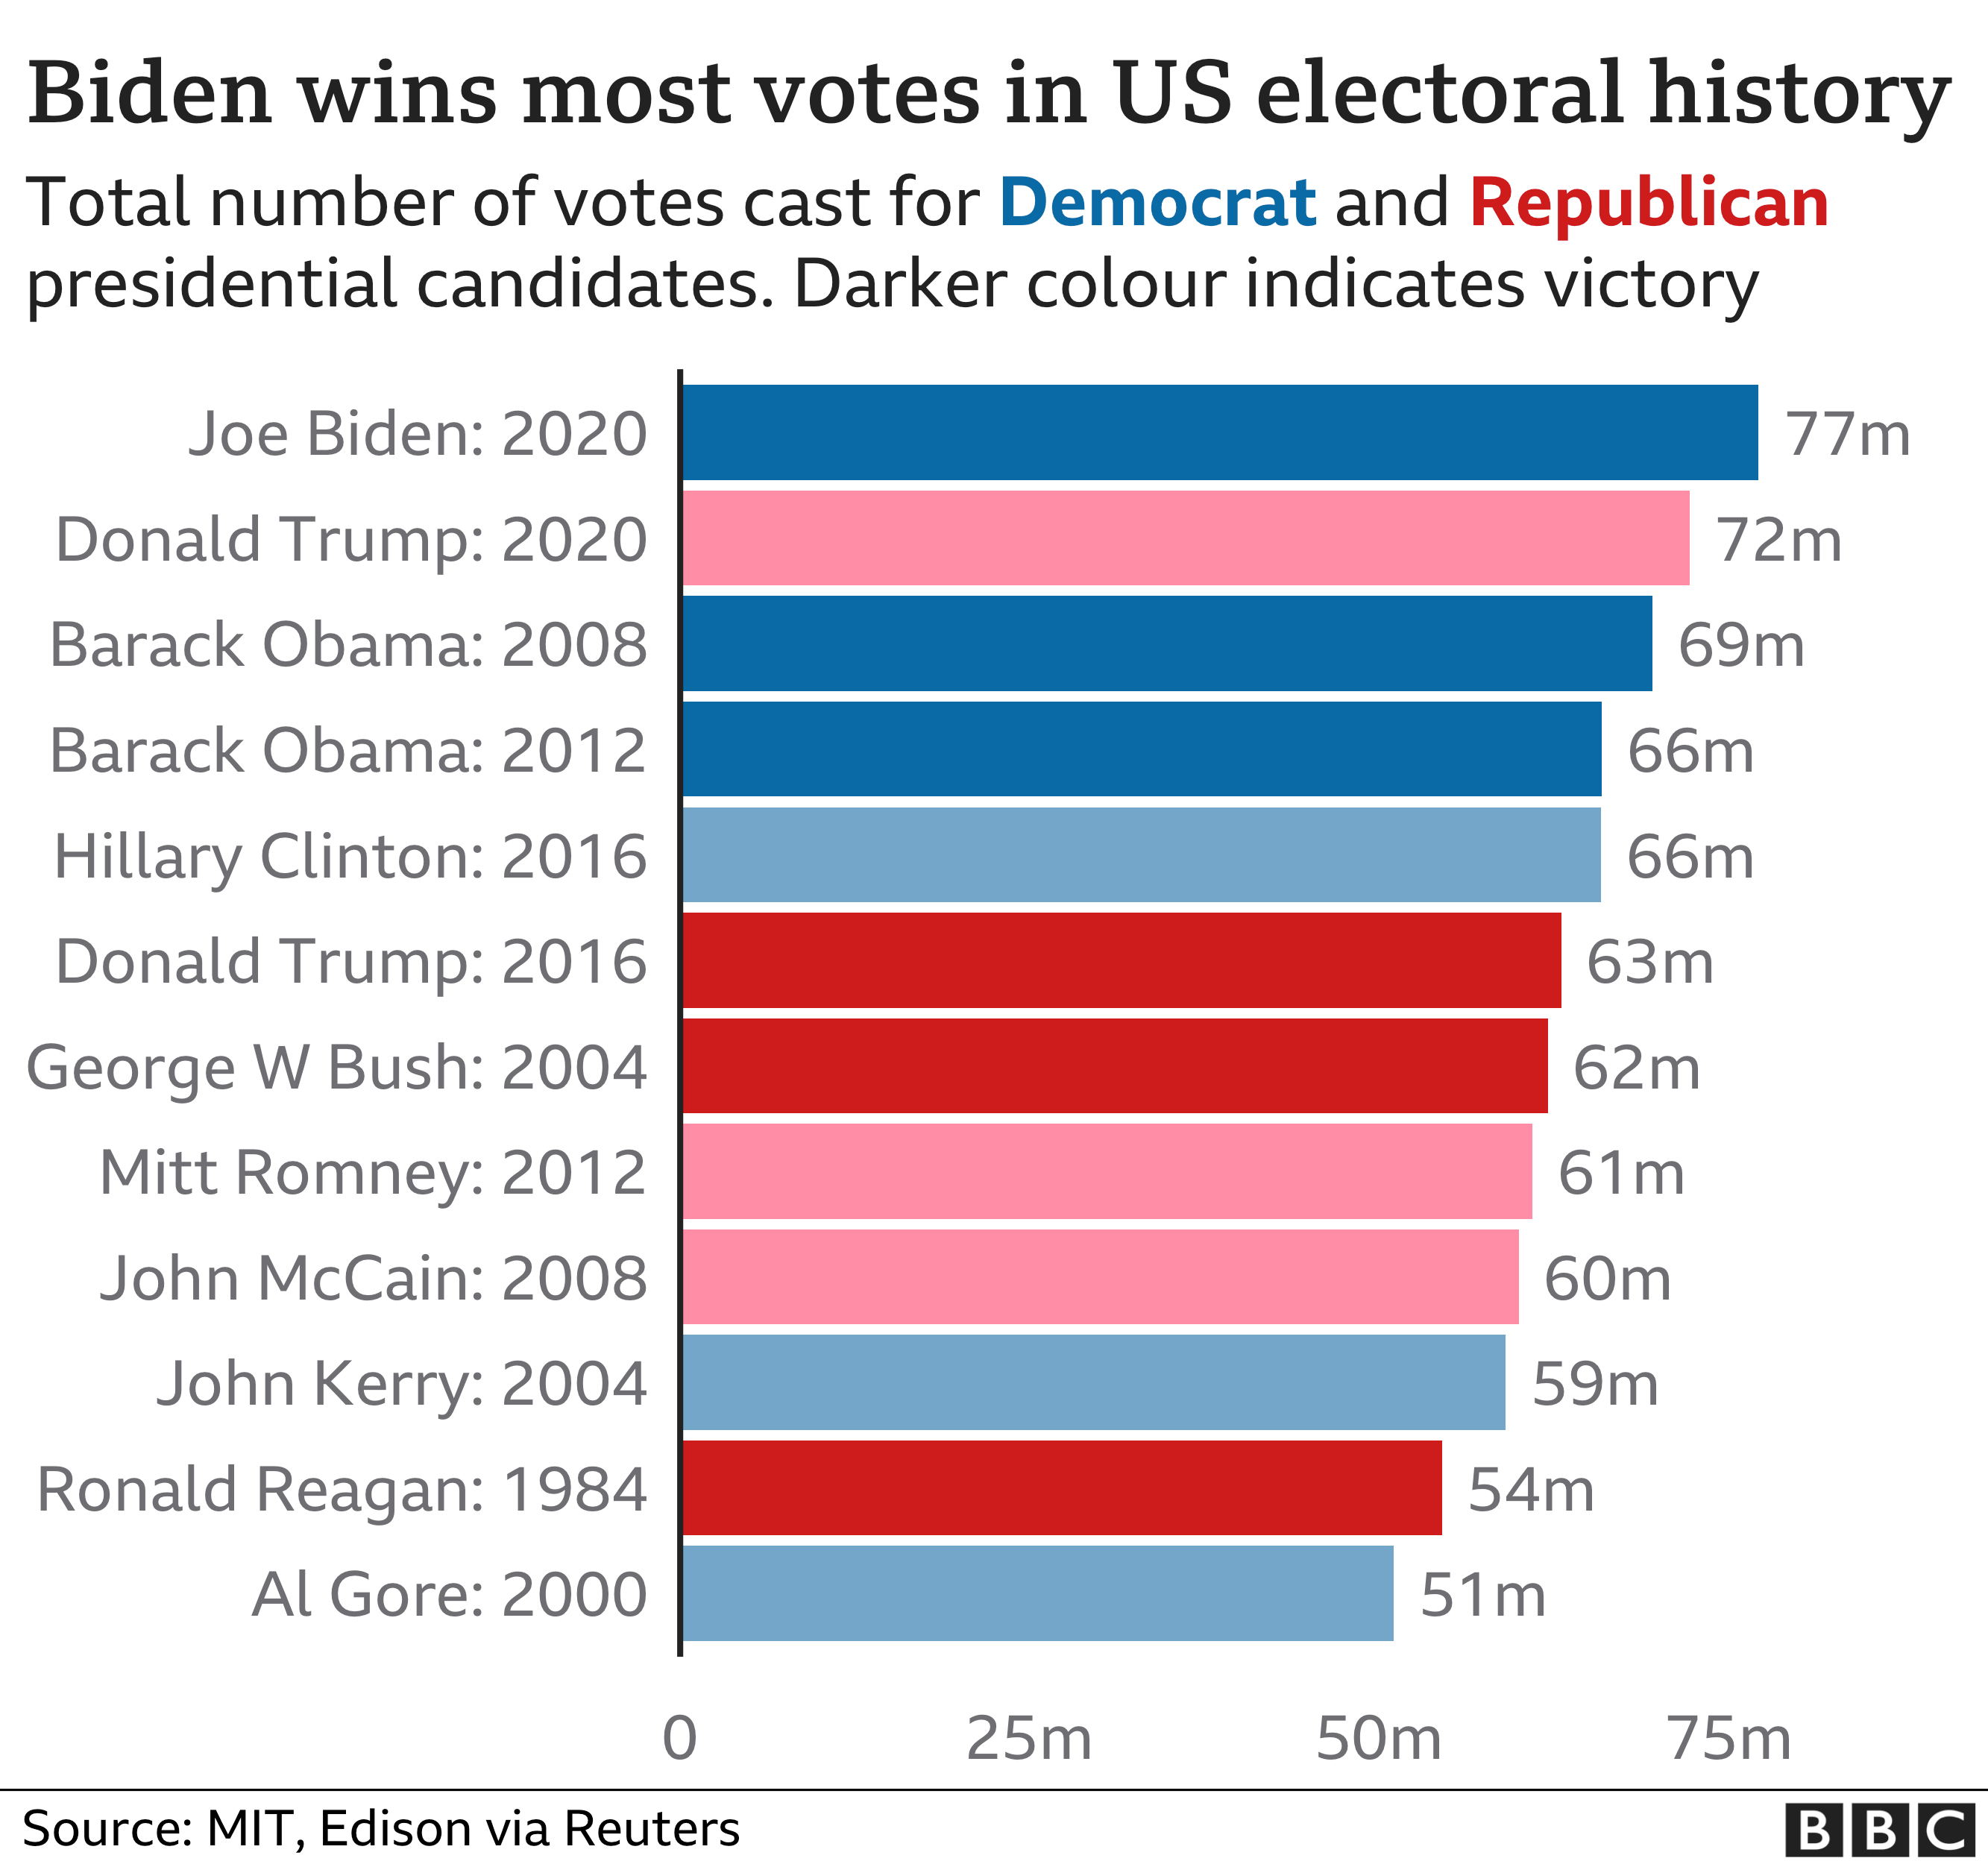 Chart showing presidential candidates with the most votes overall in US electoral history